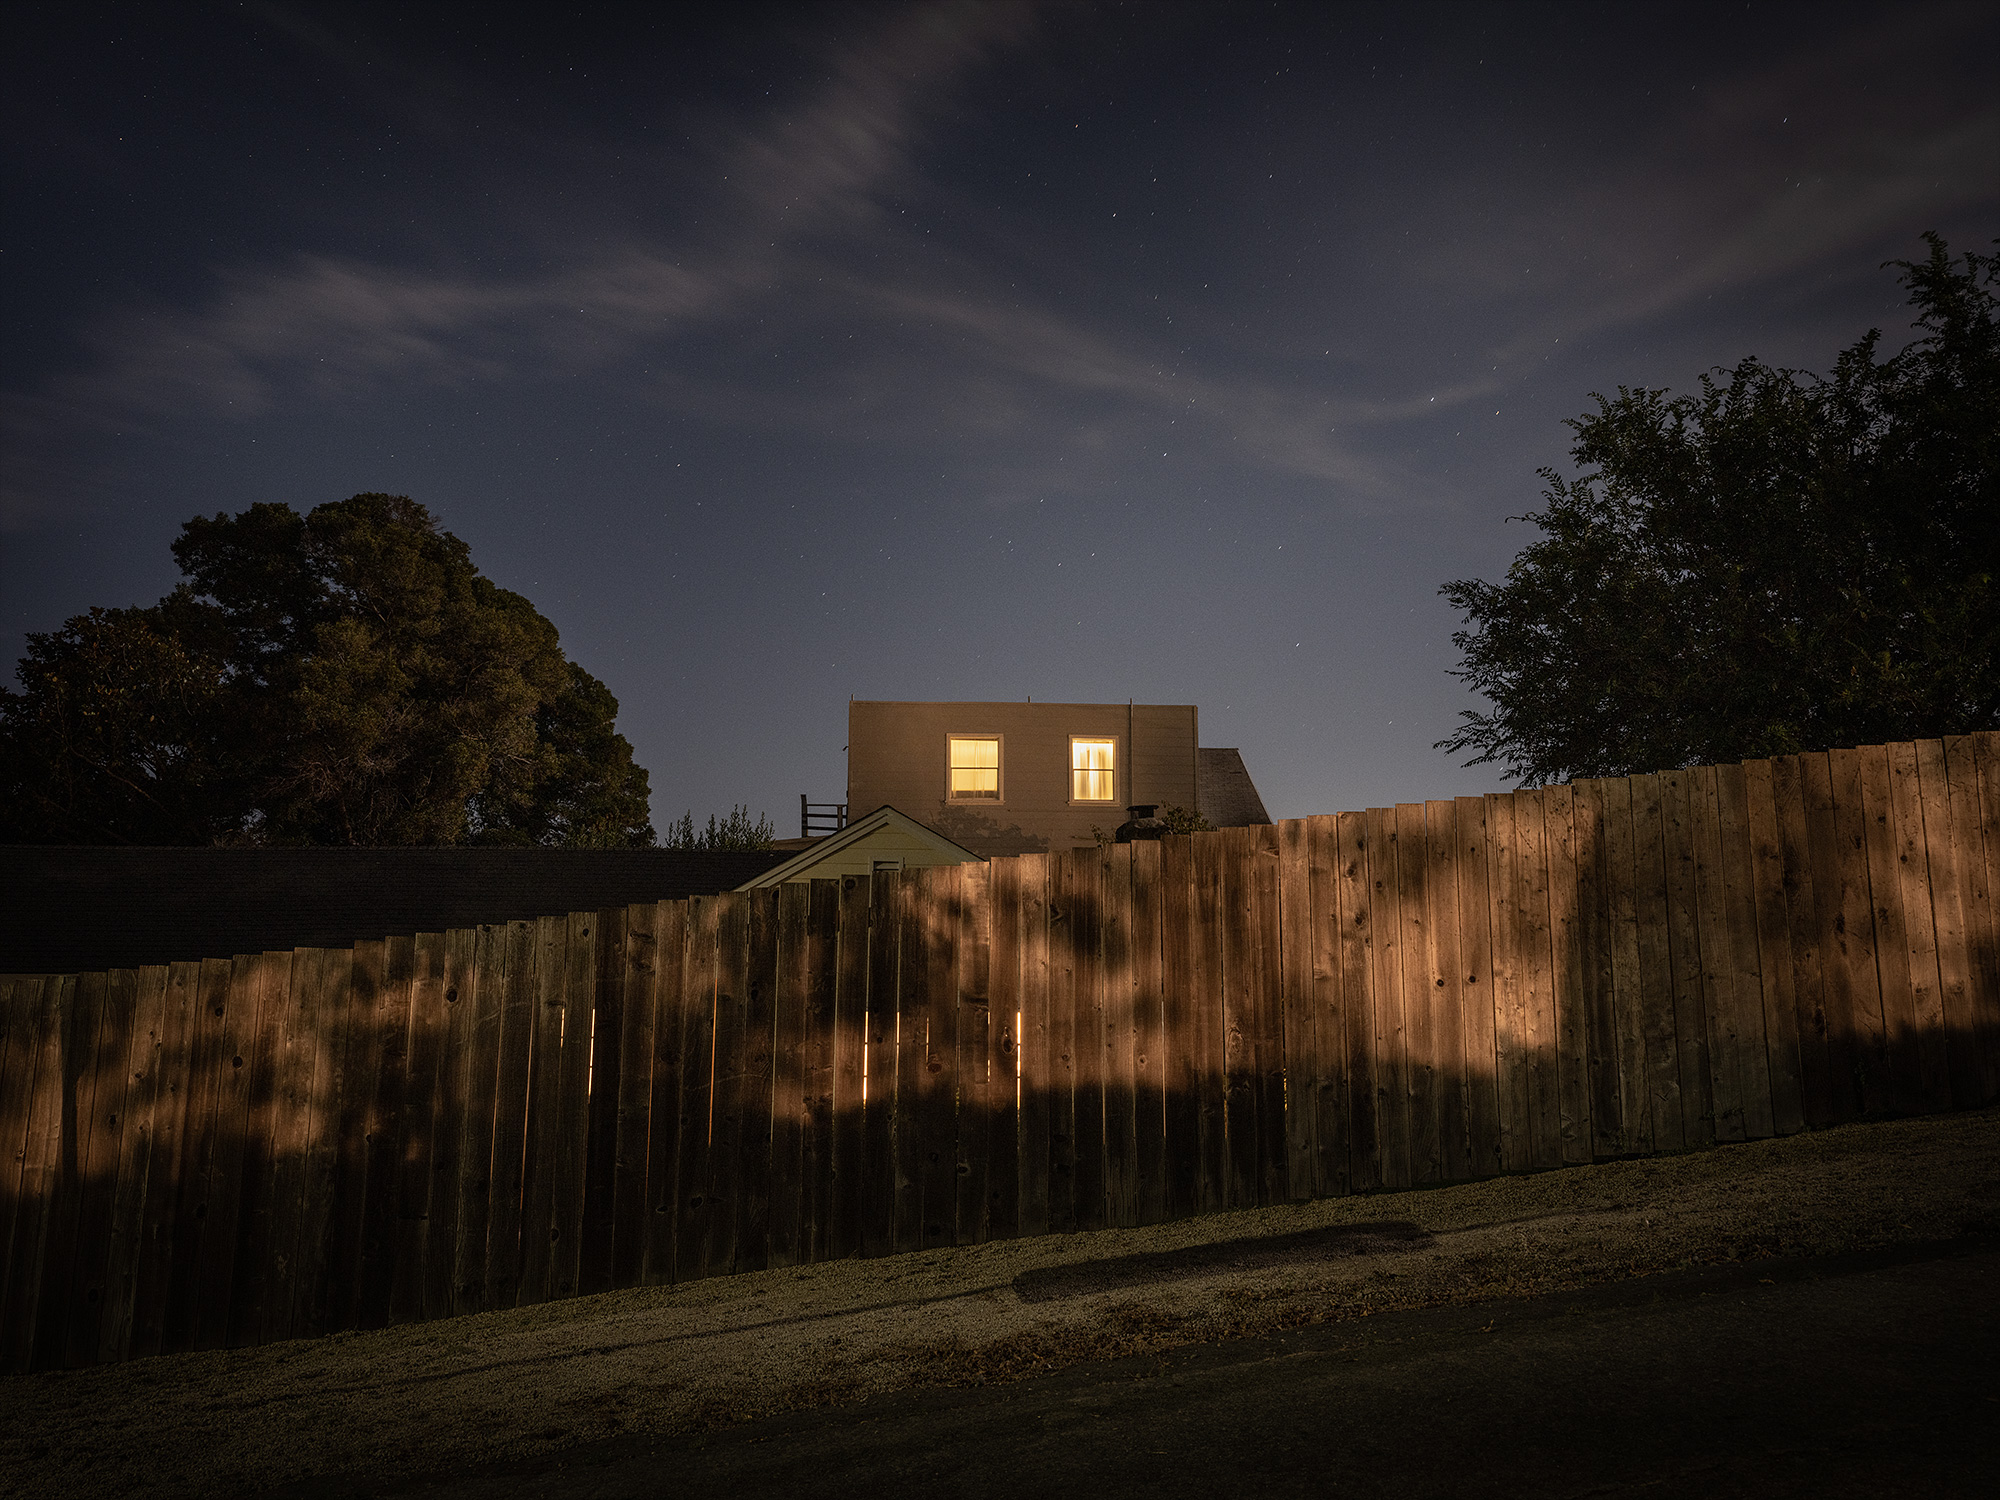 Home at night with fence with light behind it.